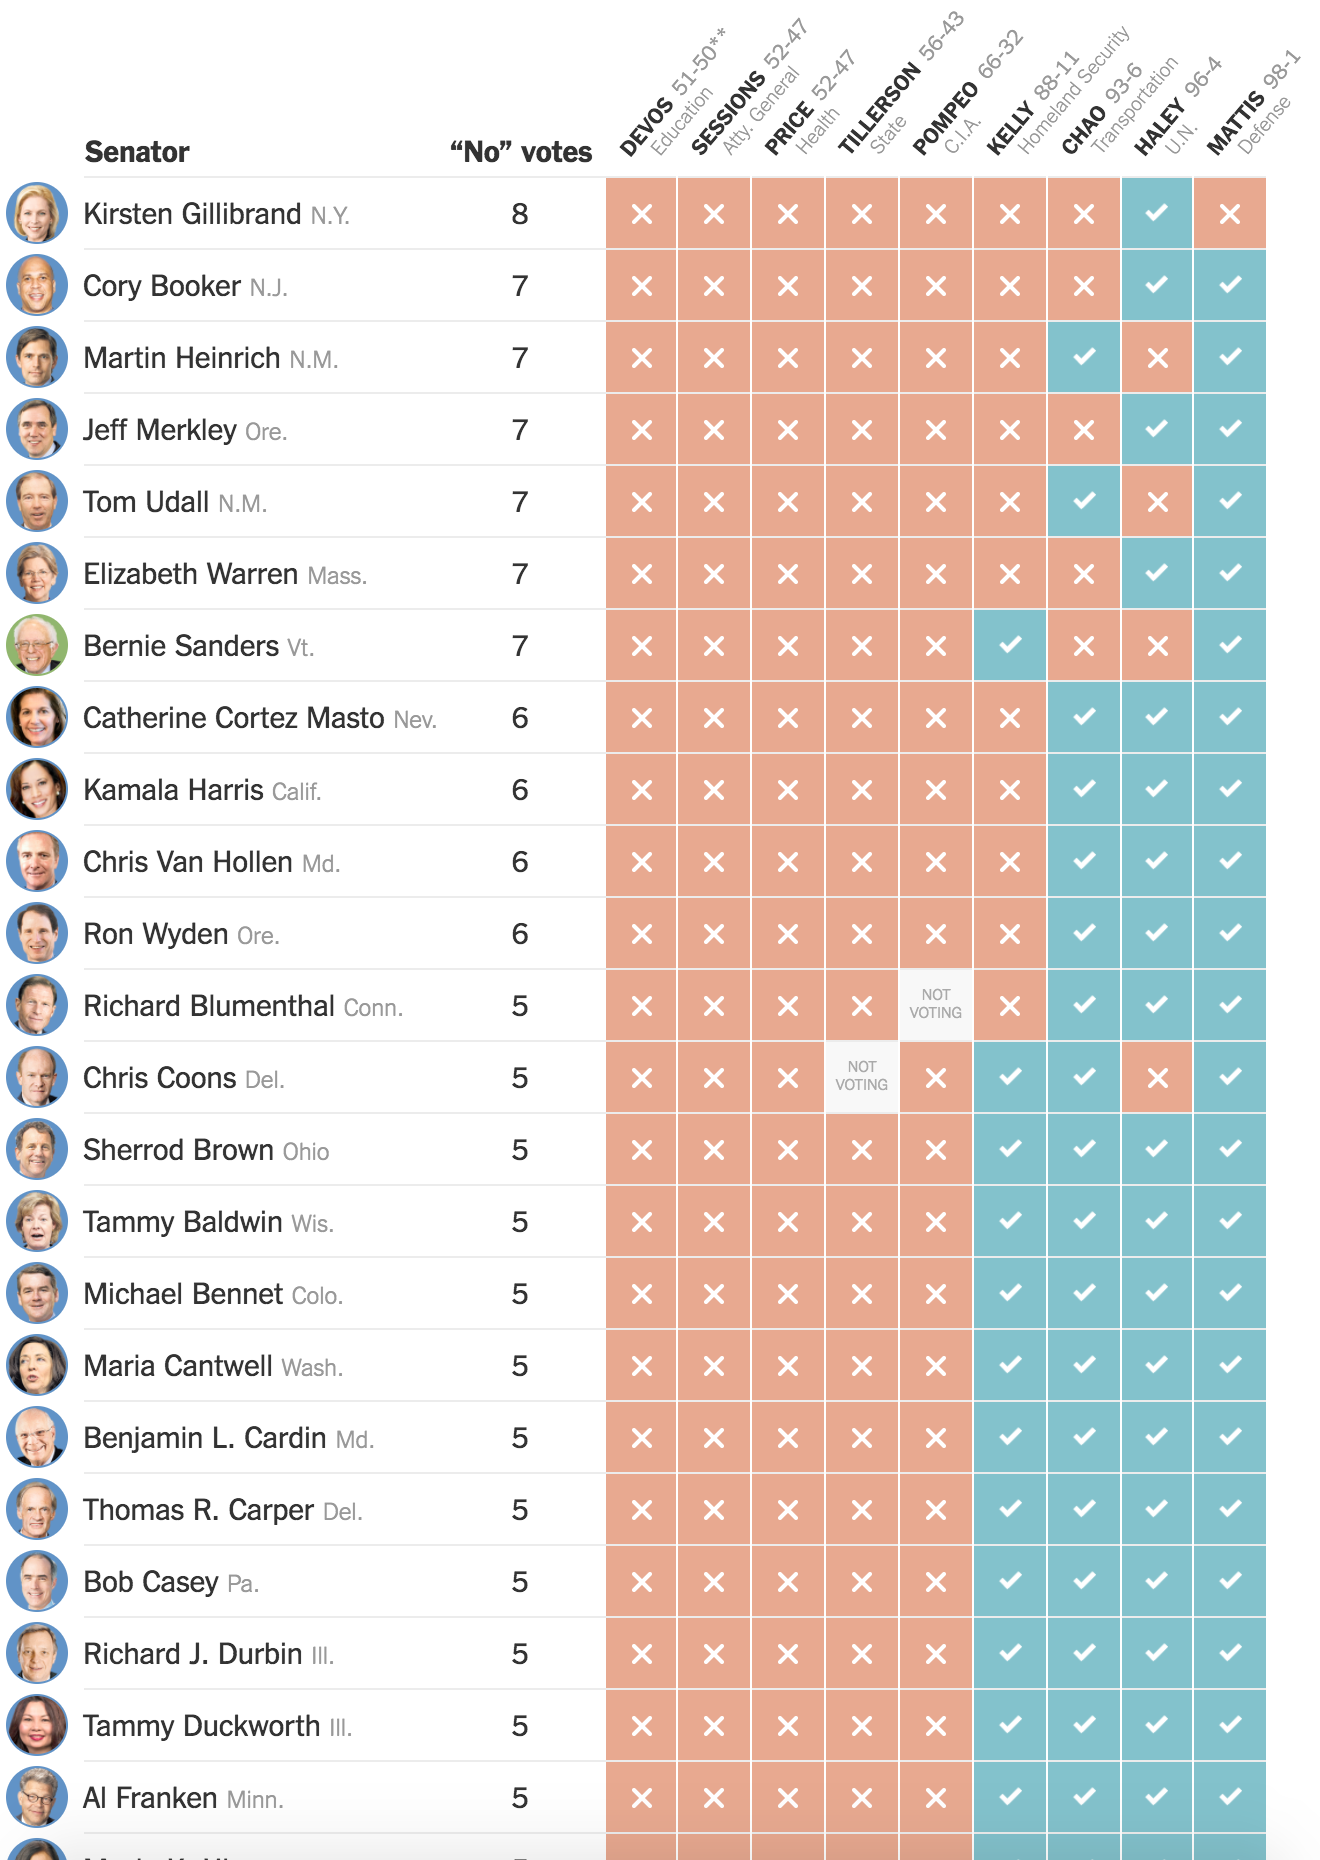 The more controversial picks are on the left, with the more no votes.